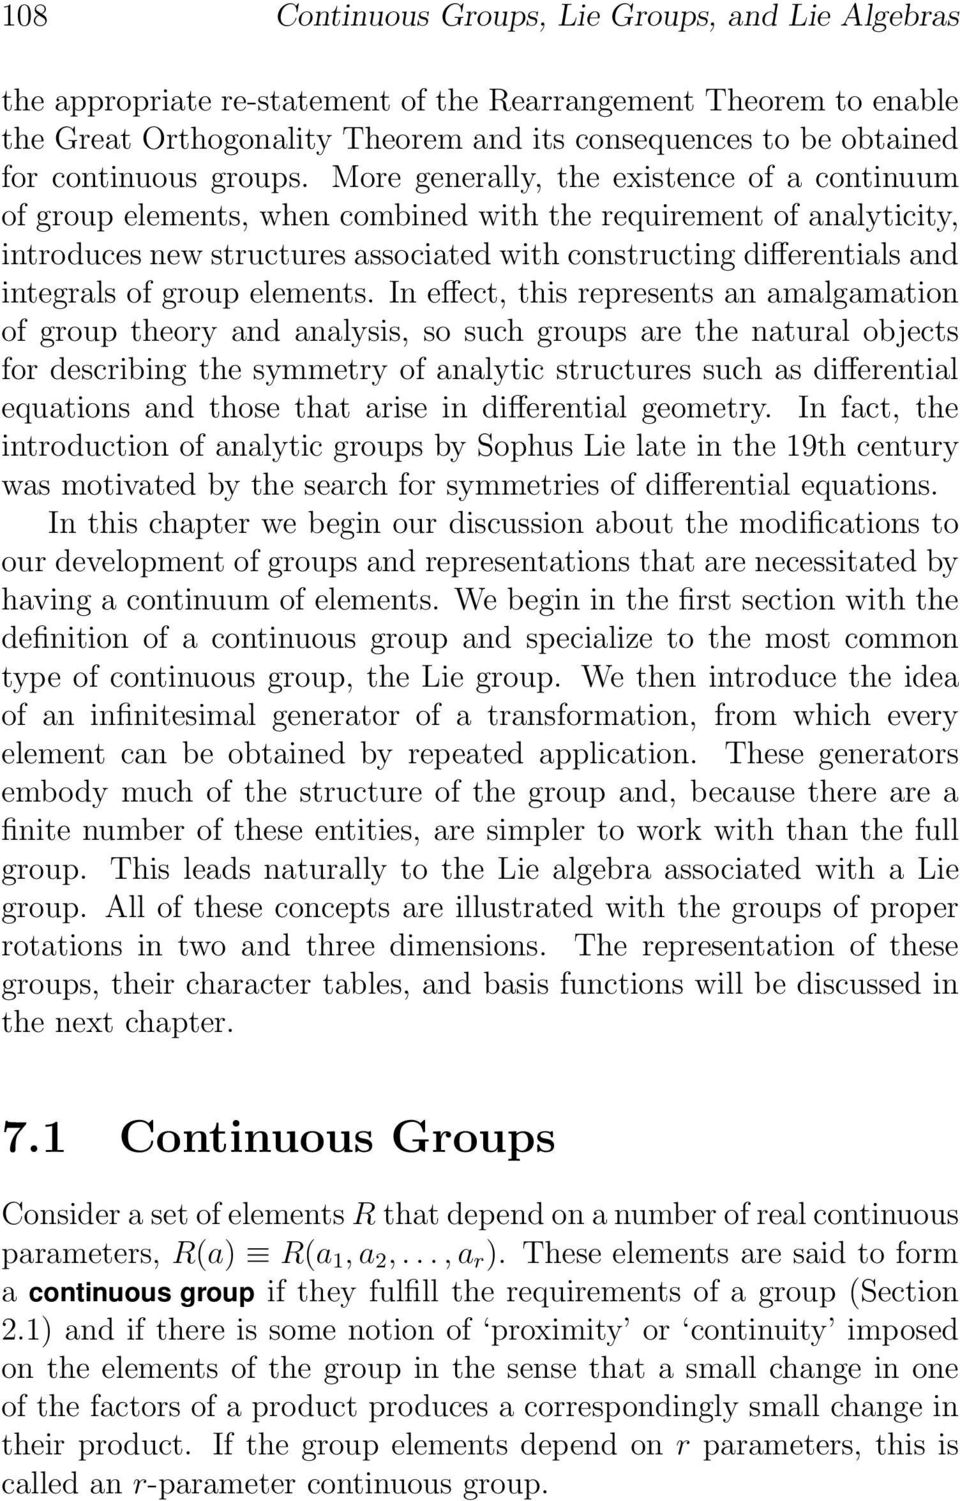 More generally, the existence of a continuum of group elements, when combined with the requirement of analyticity, introduces new structures associated with constructing differentials and integrals